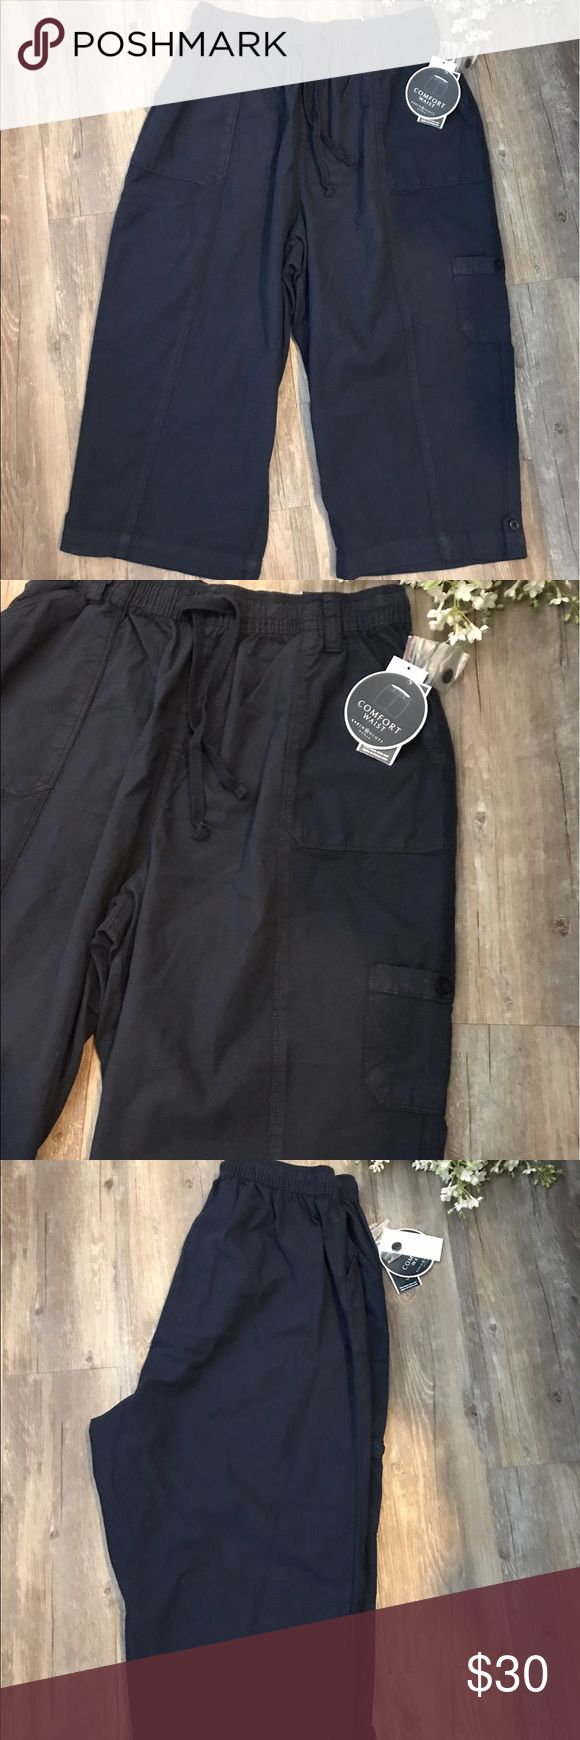 NWT Karen Scott Comfort Waist Capris Cropped Pants New with tags. Karen Scott Comfort Waist Plus Size Navy Blue Women's Capris Cropped Pants. The unique nature of this clothing is that it has been garment-dyed. This soft, well-worn look has slight color shading as part of its desired characteristics. 100% Cotton. Pet free/smoke free home. Ships same/next day. Karen Scott Pants Capris